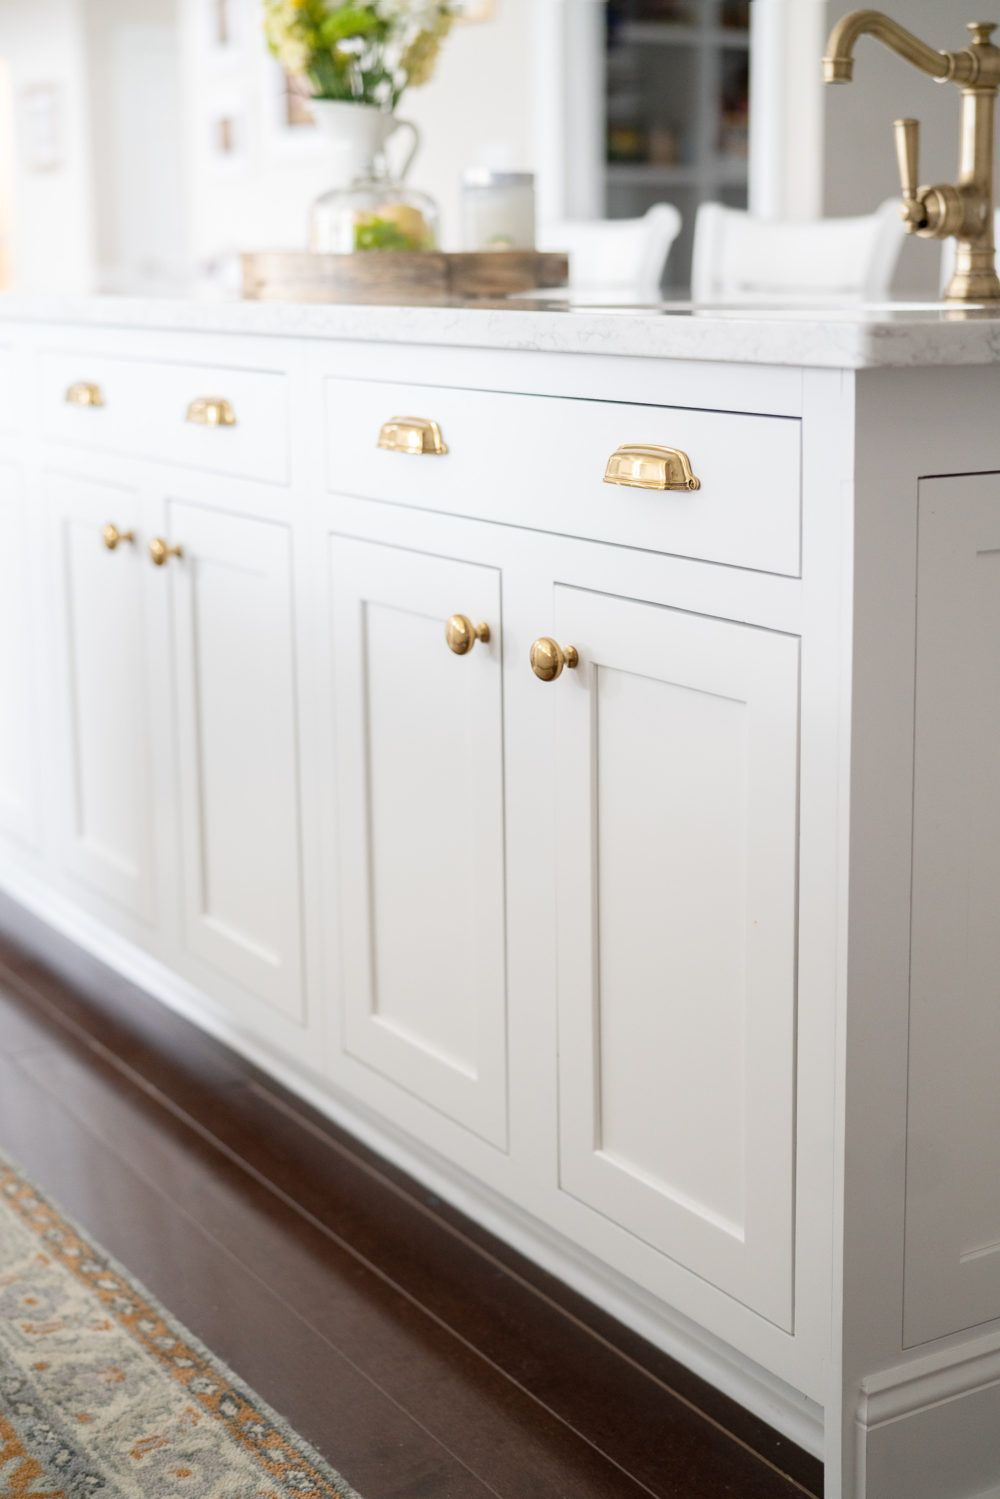 Kitchen Reveal From Overlay To Inset Inset Cabinets Classic Kitchen Cabinets Inset Cabinetry